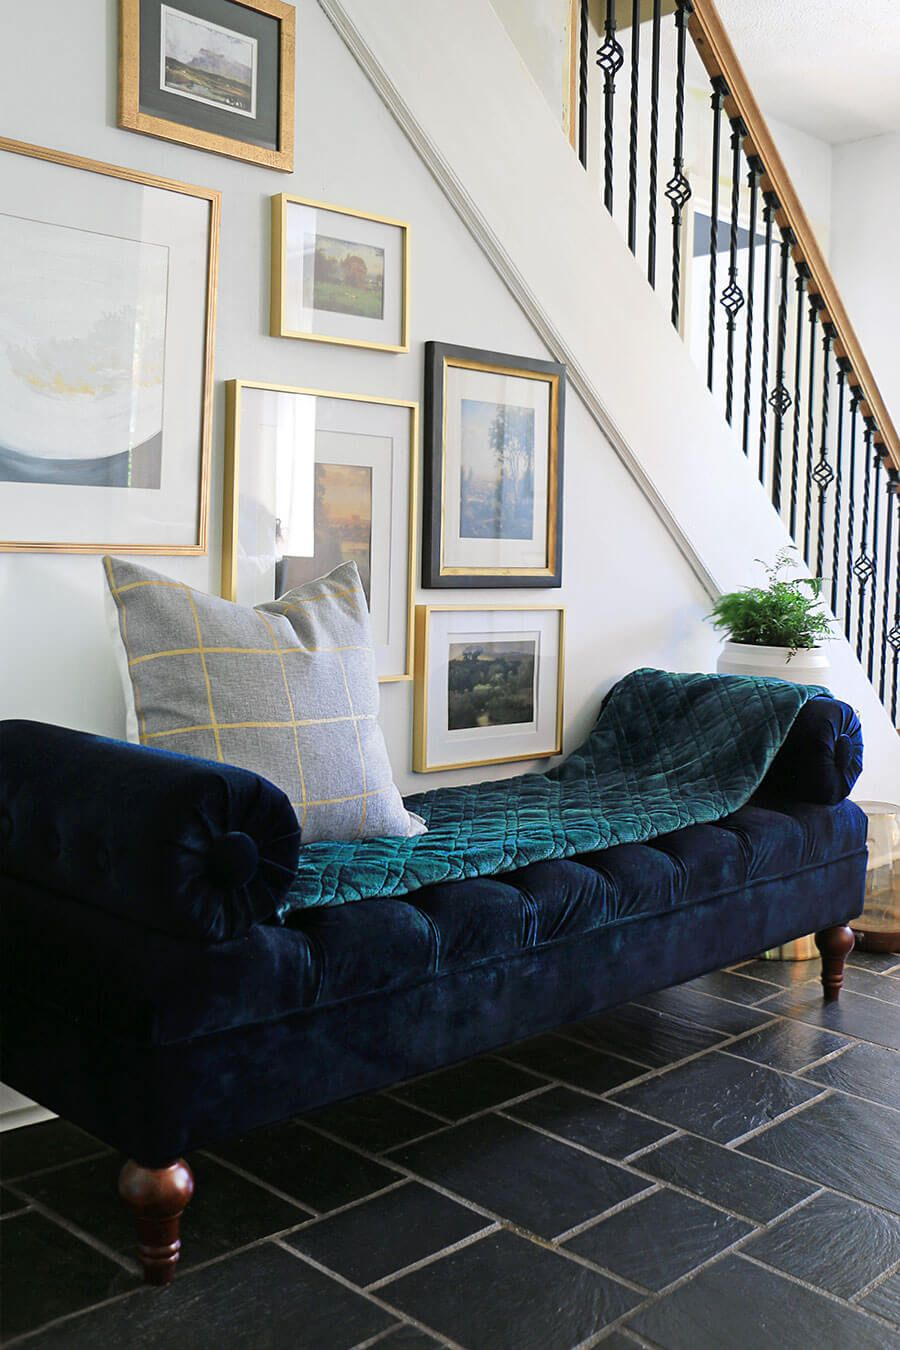 8 Stylish Sofa Cover Ideas To Protect Your Furniture Furniture Home Sofa Covers